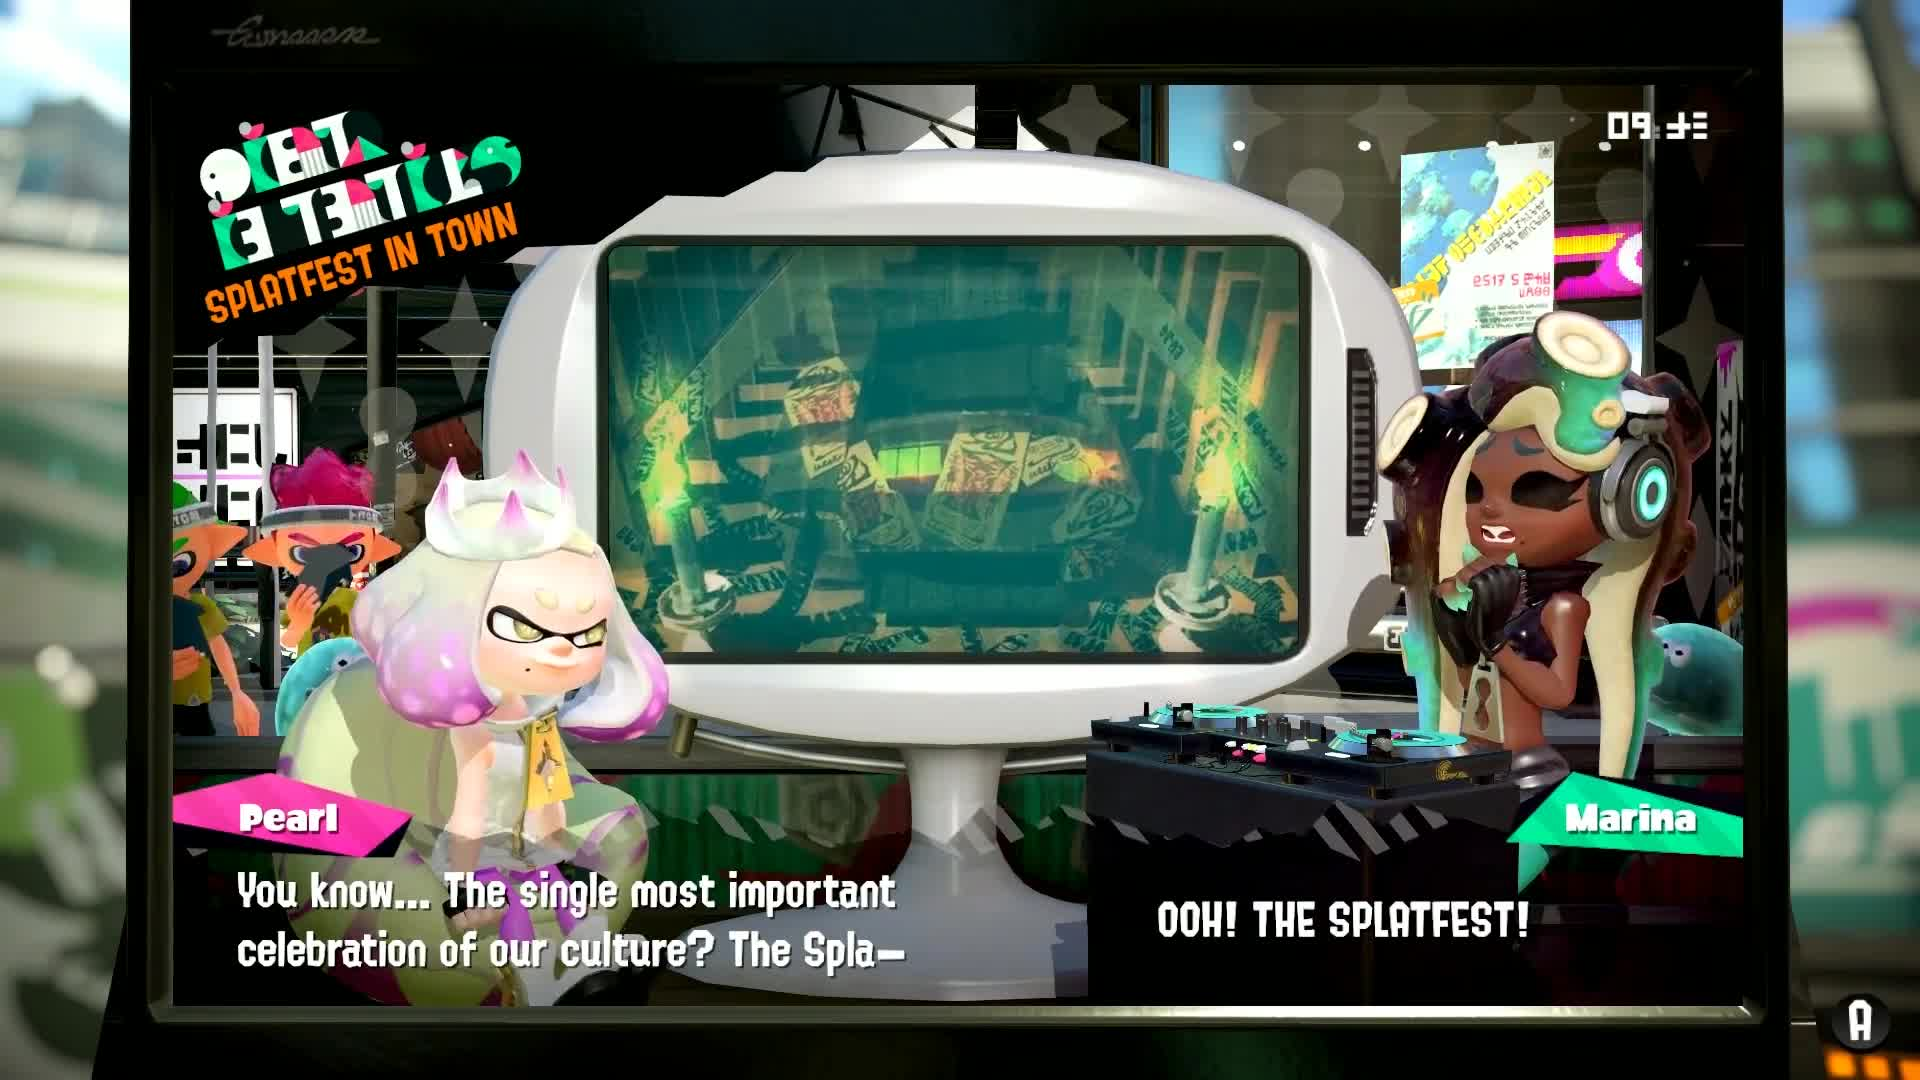 amiibo, amiibo jason, amiibo news, amiibo newscast, happily candied, marina, marina and pearl, pearl, splatoon, splatoon 2, Splatoon 2 | All Marina and Pearl Clips From the Splatfest Demo GIFs